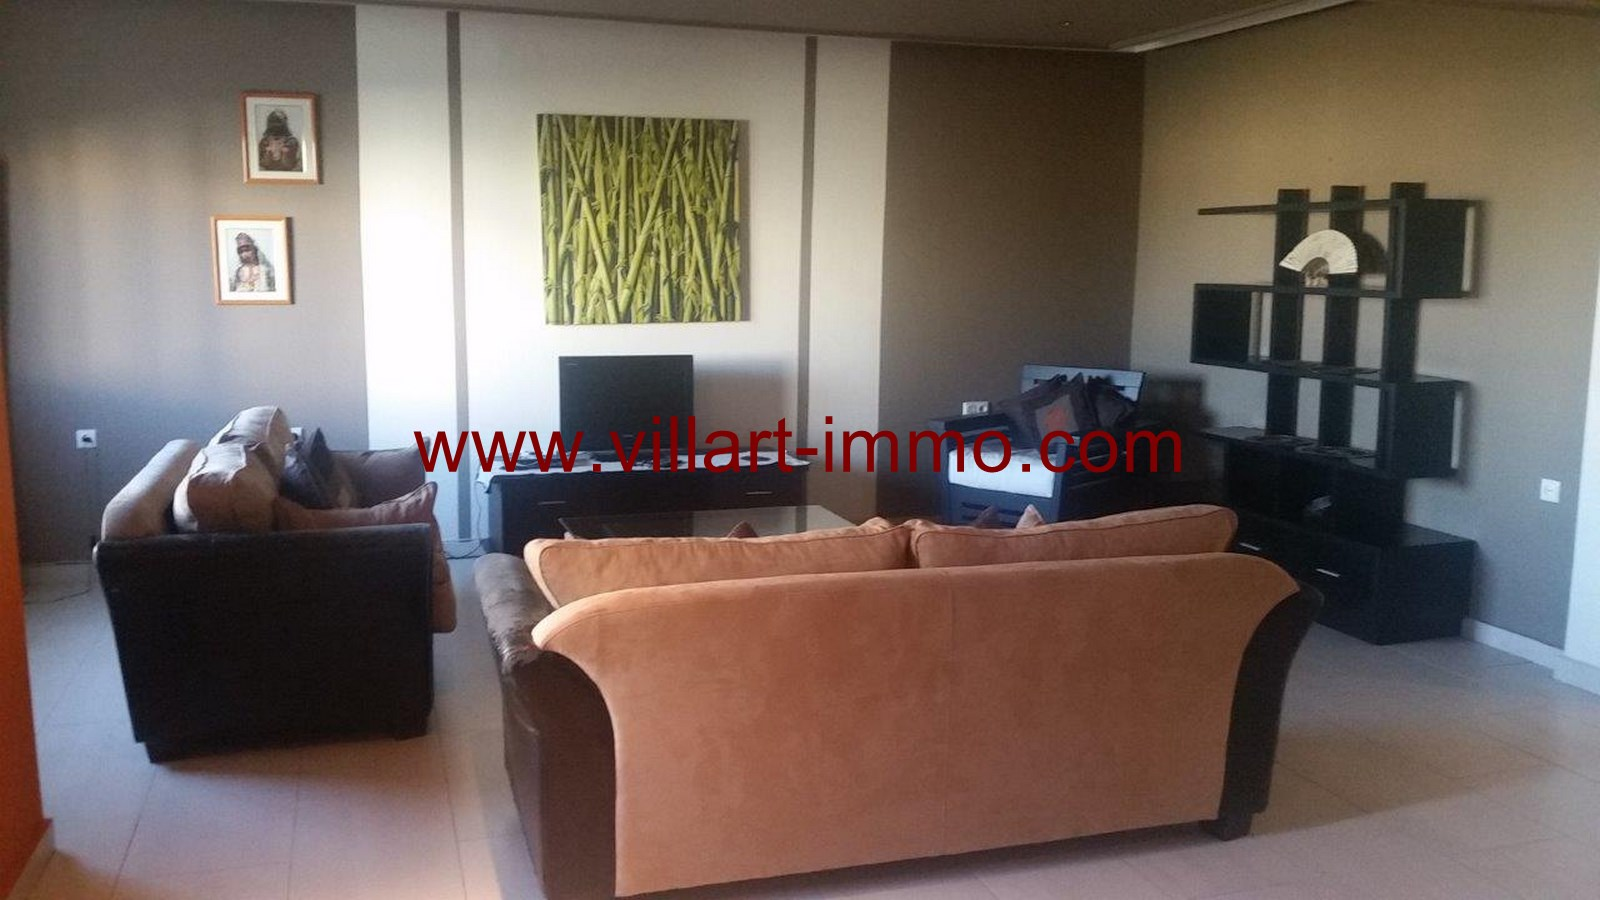 2-To Let-Villa-Furnished-Tangier-Living room 1-LSTV986-Villart-Immo